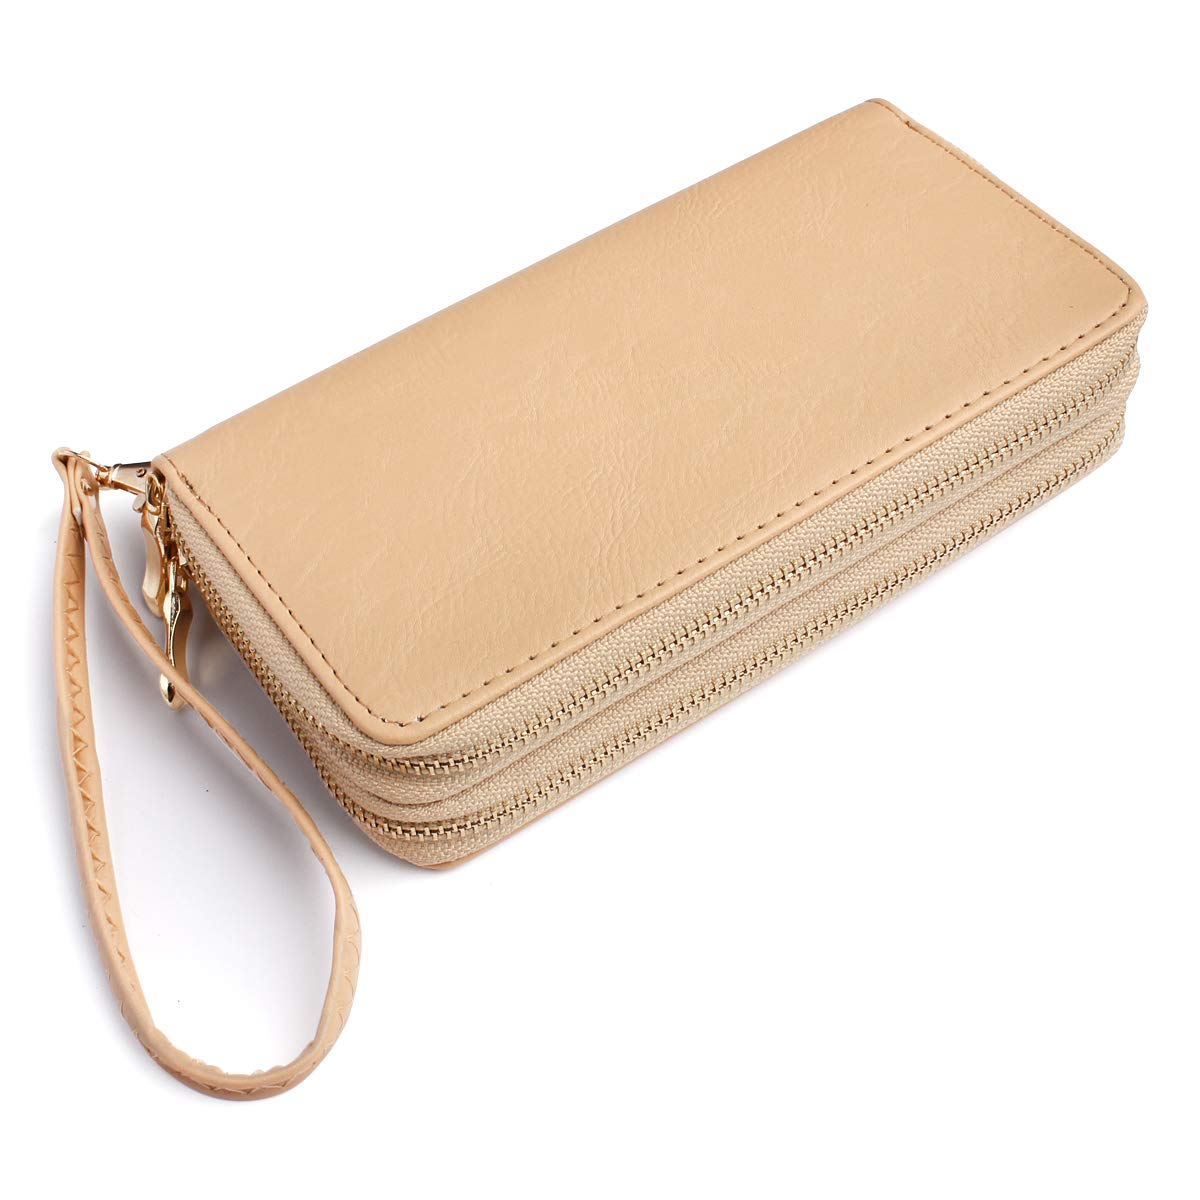 Classic Zip Around Wallet - PU Leather Double Zipper Clutch Purse with Card & Phone Slots, Removable Wristlet Strap (Sand) by MYS Collection (Image #1)